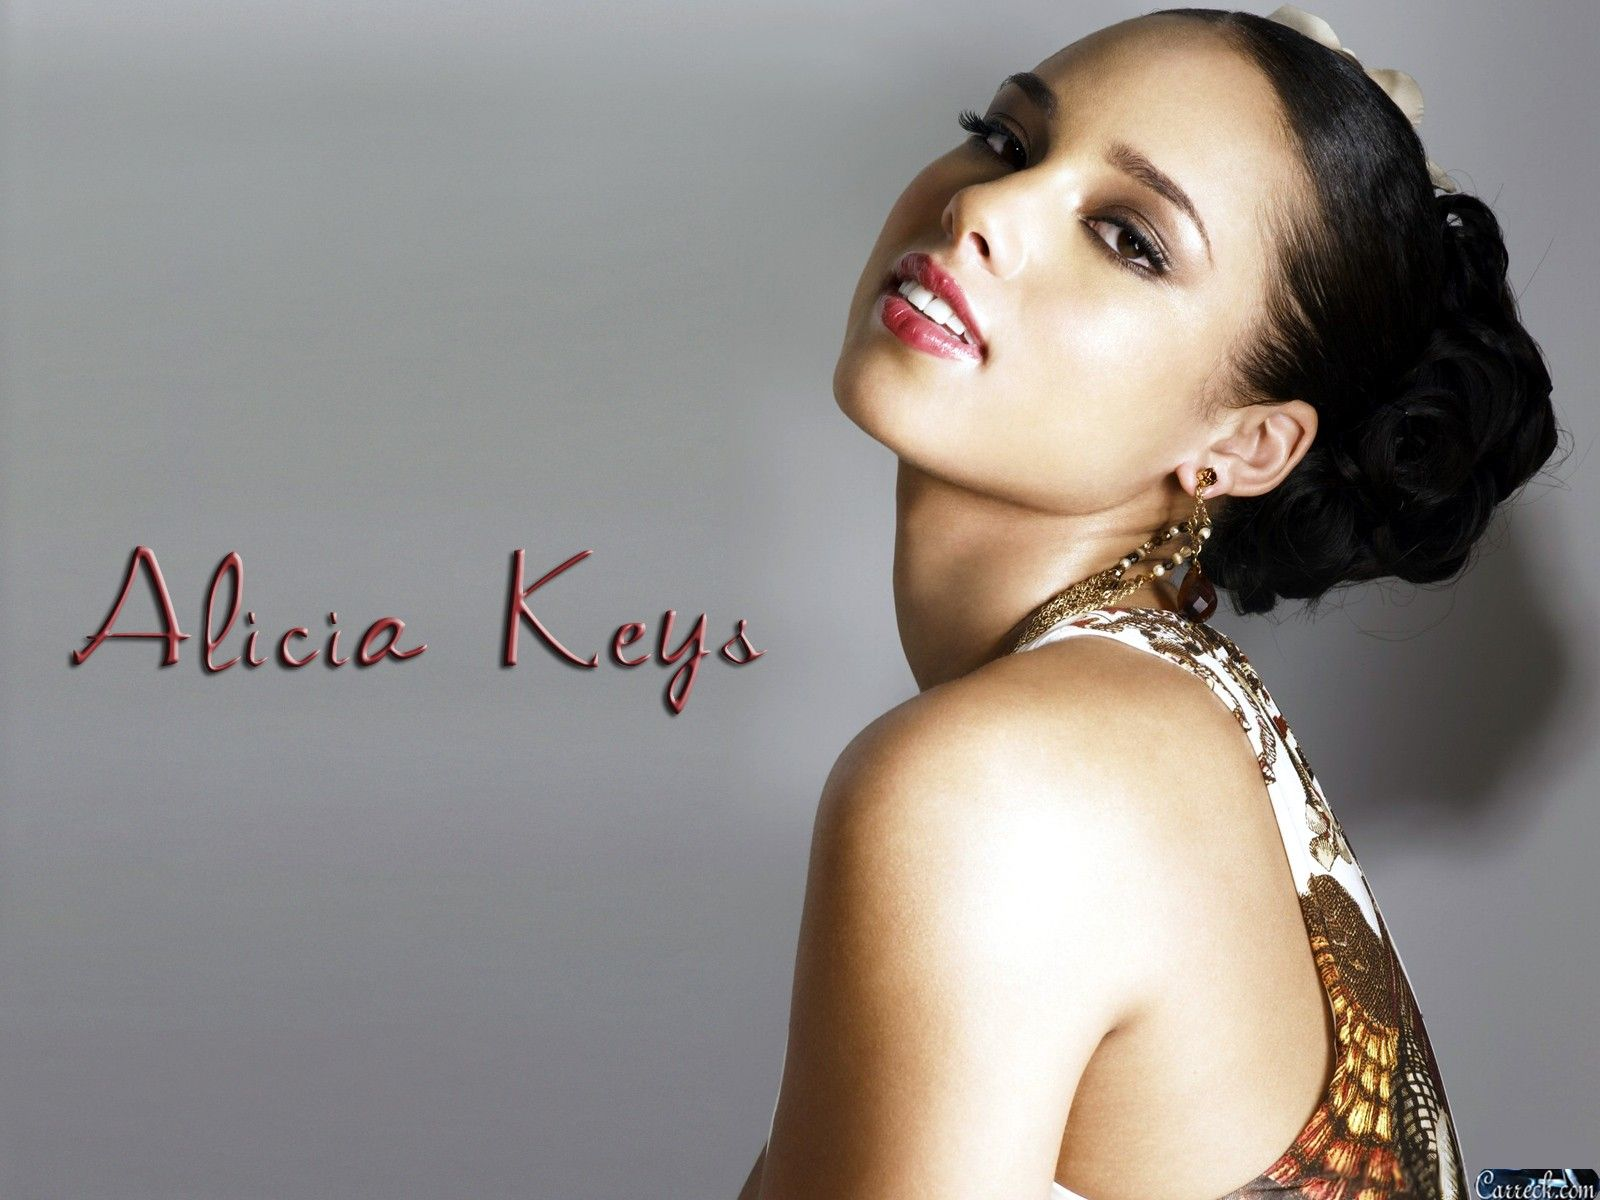 1600x1200 Alicia Keys Wallpapers, Pictures, Images